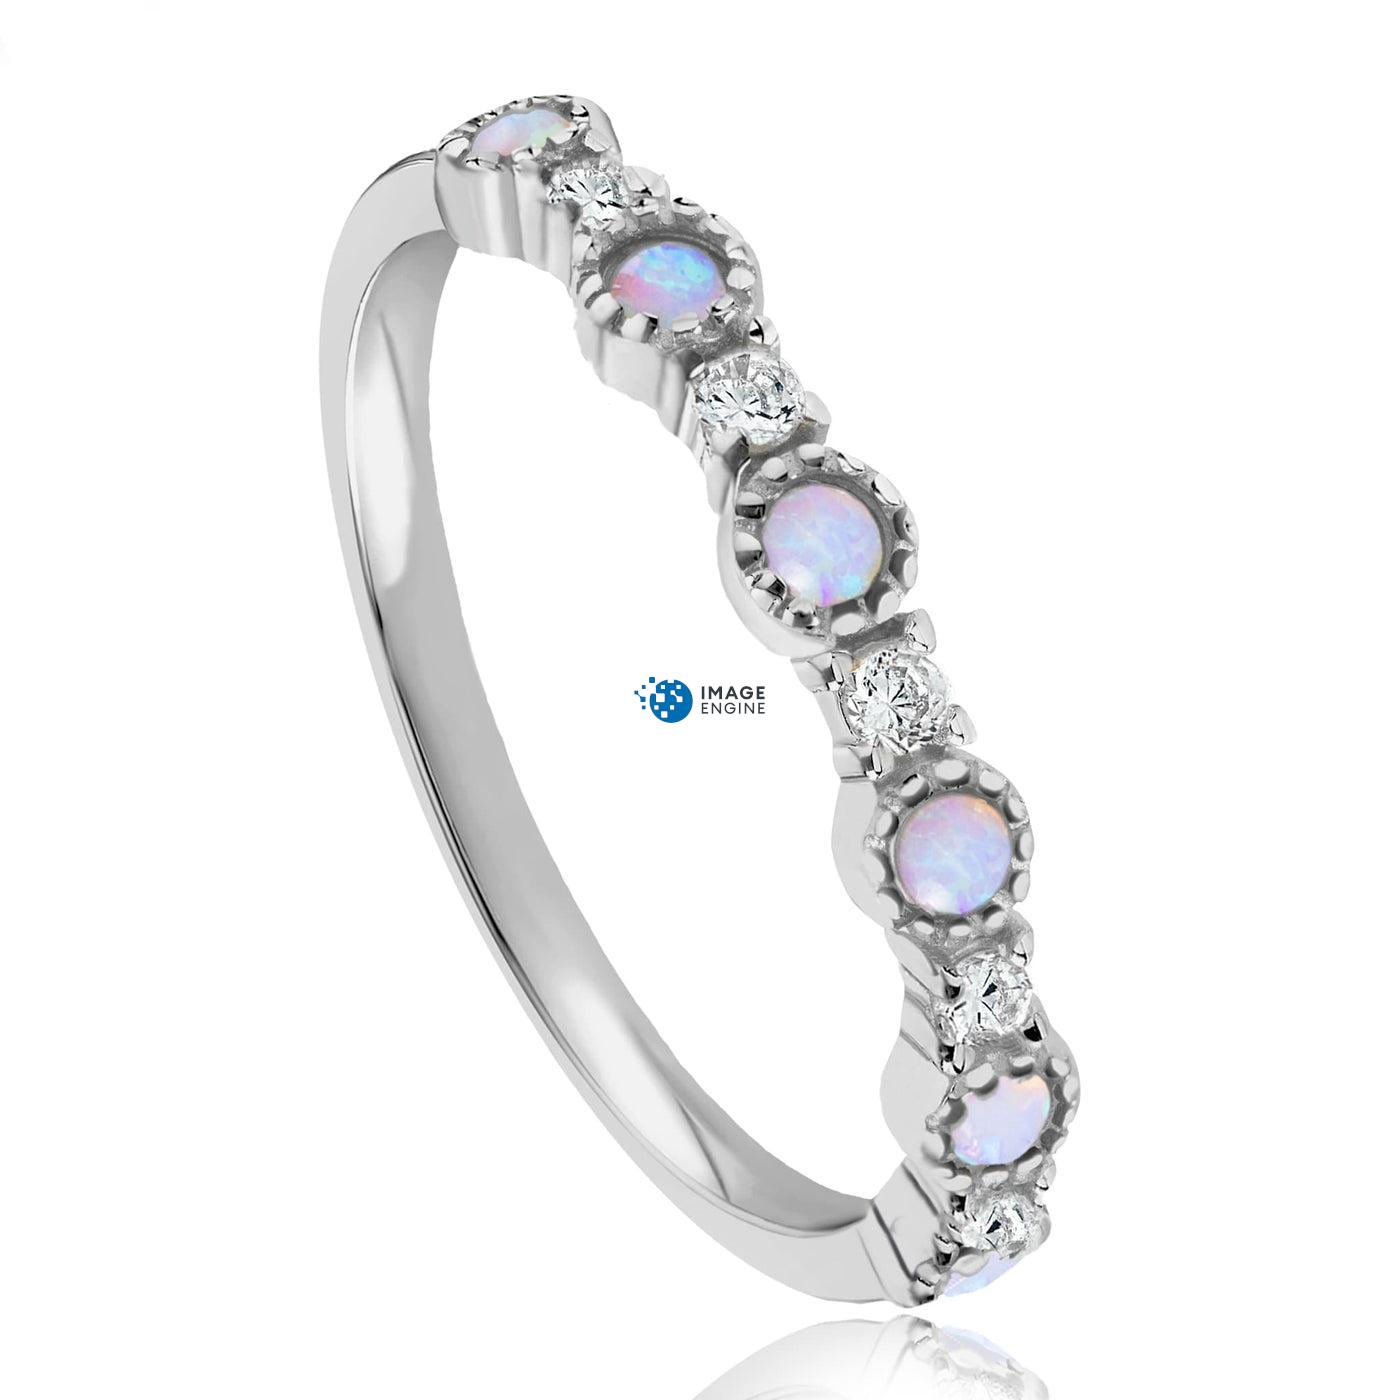 Debra Dots Opal Ring - Three Quarter View - 925 Sterling Silver